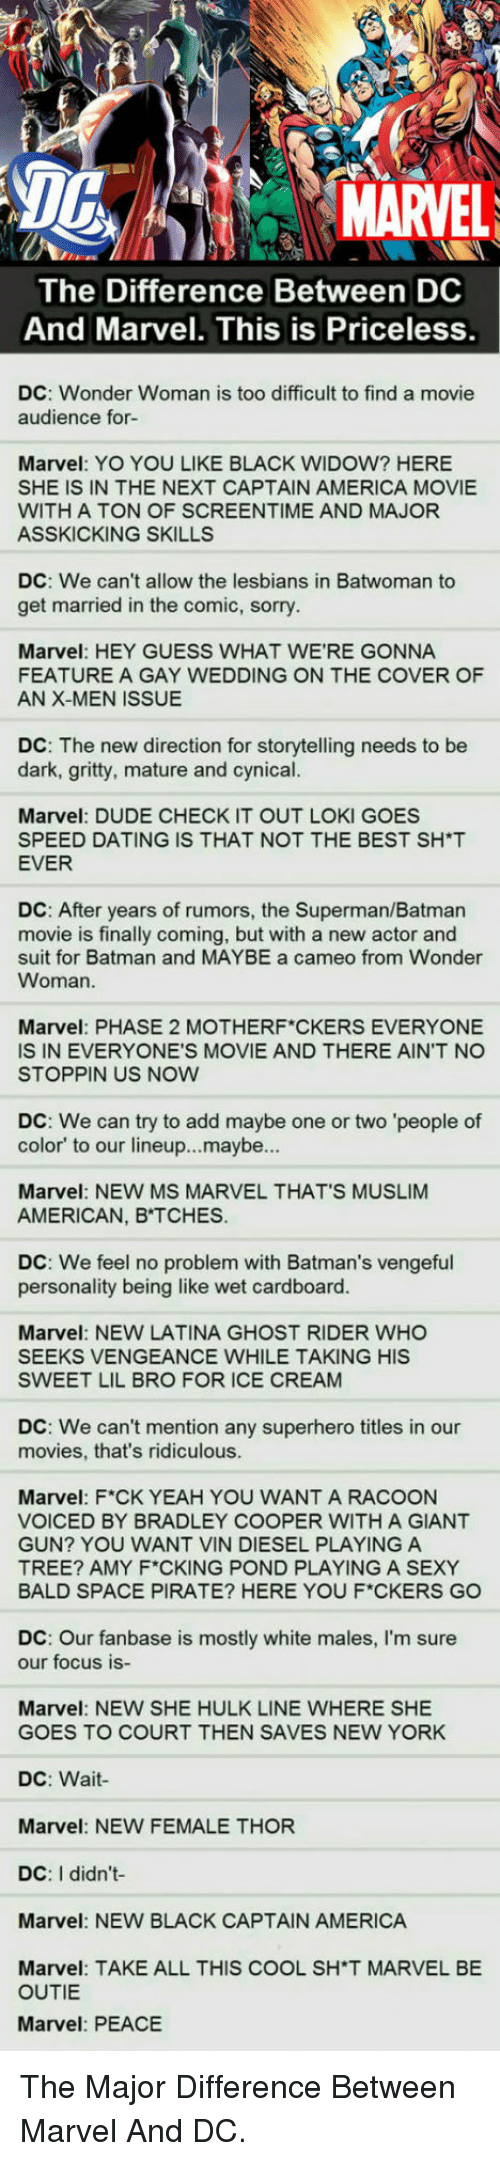 Muslim American: DG  MARVEL  The Difference Between DC  And Marvel. This is Priceless  DC: Wonder Woman is too difficult to find a movie  audience for-  Marvel: YO YOU LIKE BLACK WIDOW? HERE  SHE IS IN THE NEXT CAPTAIN AMERICA MOVIE  WITH A TON OF SCREENTIME AND MAJOR  ASSKICKING SKILLS  DC: We can't allow the lesbians in Batwoman to  get married in the comic, sorry  Marvel: HEY GUESS WHAT WE'RE GONNA  FEATURE A GAY WEDDING ON THE COVER OF  AN X-MEN ISSUE  DC: The new direction for storytelling needs to be  dark, gritty, mature and cynical.  ES  Marvel: DUDE CHECK IT OUT LOKI GO  SPEED DATING IS THAT NOT THE BEST SH*T  EVER  DC: After years of rumors, the Superman/Batman  movie is finally coming, but with a new actor and  suit for Batman and MAYBE a cameo from Wonder  Woman.  Marvel: PHASE 2 MOTHERF CKERS EVERYONE  IS IN EVERYONE'S MOVIE AND THERE AIN'T NO  STOPPIN US NOW  DC: We can try to add maybe one or two 'people of  color' to our lineup...maybe...  Marvel: NEW MS MARVEL THAT'S MUSLIM  AMERICAN, B TCHES.  DC: We feel no problem with Batman's vengeful  personality being like wet cardboard.  Marvel: NEW LATINA GHOST RIDER WHO  SEEKS VENGEANCE WHILE TAKING HIS  SWEET LIL BRO FOR ICE CREAM  DC: We can't mention any superhero titles in our  movies, that's ridiculous  Marvel: F*CK YEAH YOU WANT A RACOON  VOICED BY BRADLEY COOPER WITH A GIANT  GUN? YOU WANT VIN DIESEL PLAYING A  TREE? AMY F CKING POND PLAYING A SEXY  BALD SPACE PIRATE? HERE YOU F*CKERS GO  DC: Our fanbase is mostly white males, I'm sure  our focus is-  Marvel: NEW SHE HULK LINE WHERE SHE  GOES TO COURT THEN SAVES NEW YORK  DC: Wait  Marvel: NEW FEMALE THOR  DC: I didn't  Marvel: NEW BLACK CAPTAIN AMERICA  Marvel: TAKE ALL THIS COOL SH'T MARVEL BE  OUTIE  Marvel: PEACE <p>The Major Difference Between Marvel And DC.</p>